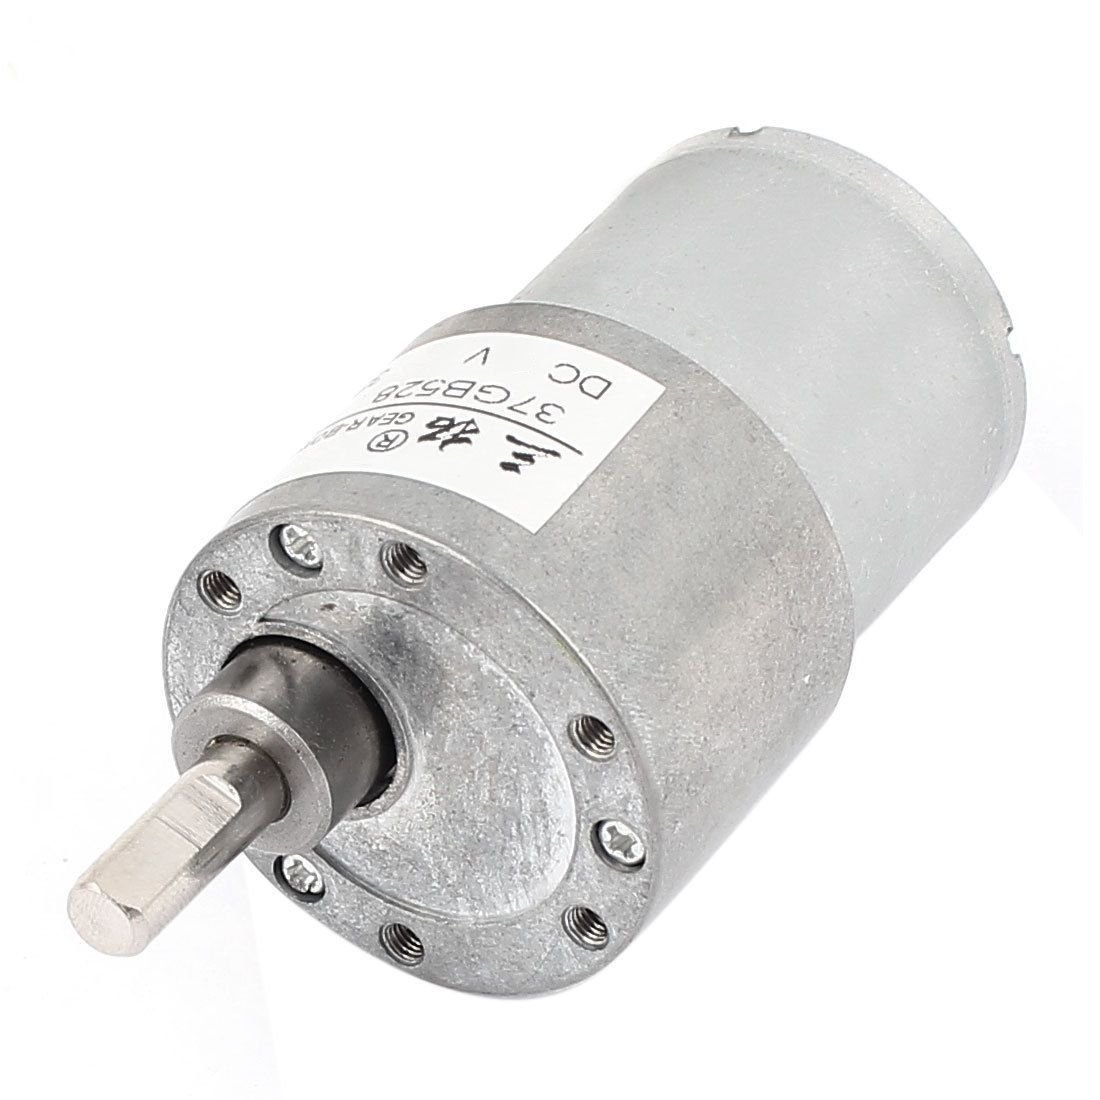 DC 24V 200RPM 0.15A 0.7KG.cm DC Gear Box Reducer Variable Speed Motor Reversible